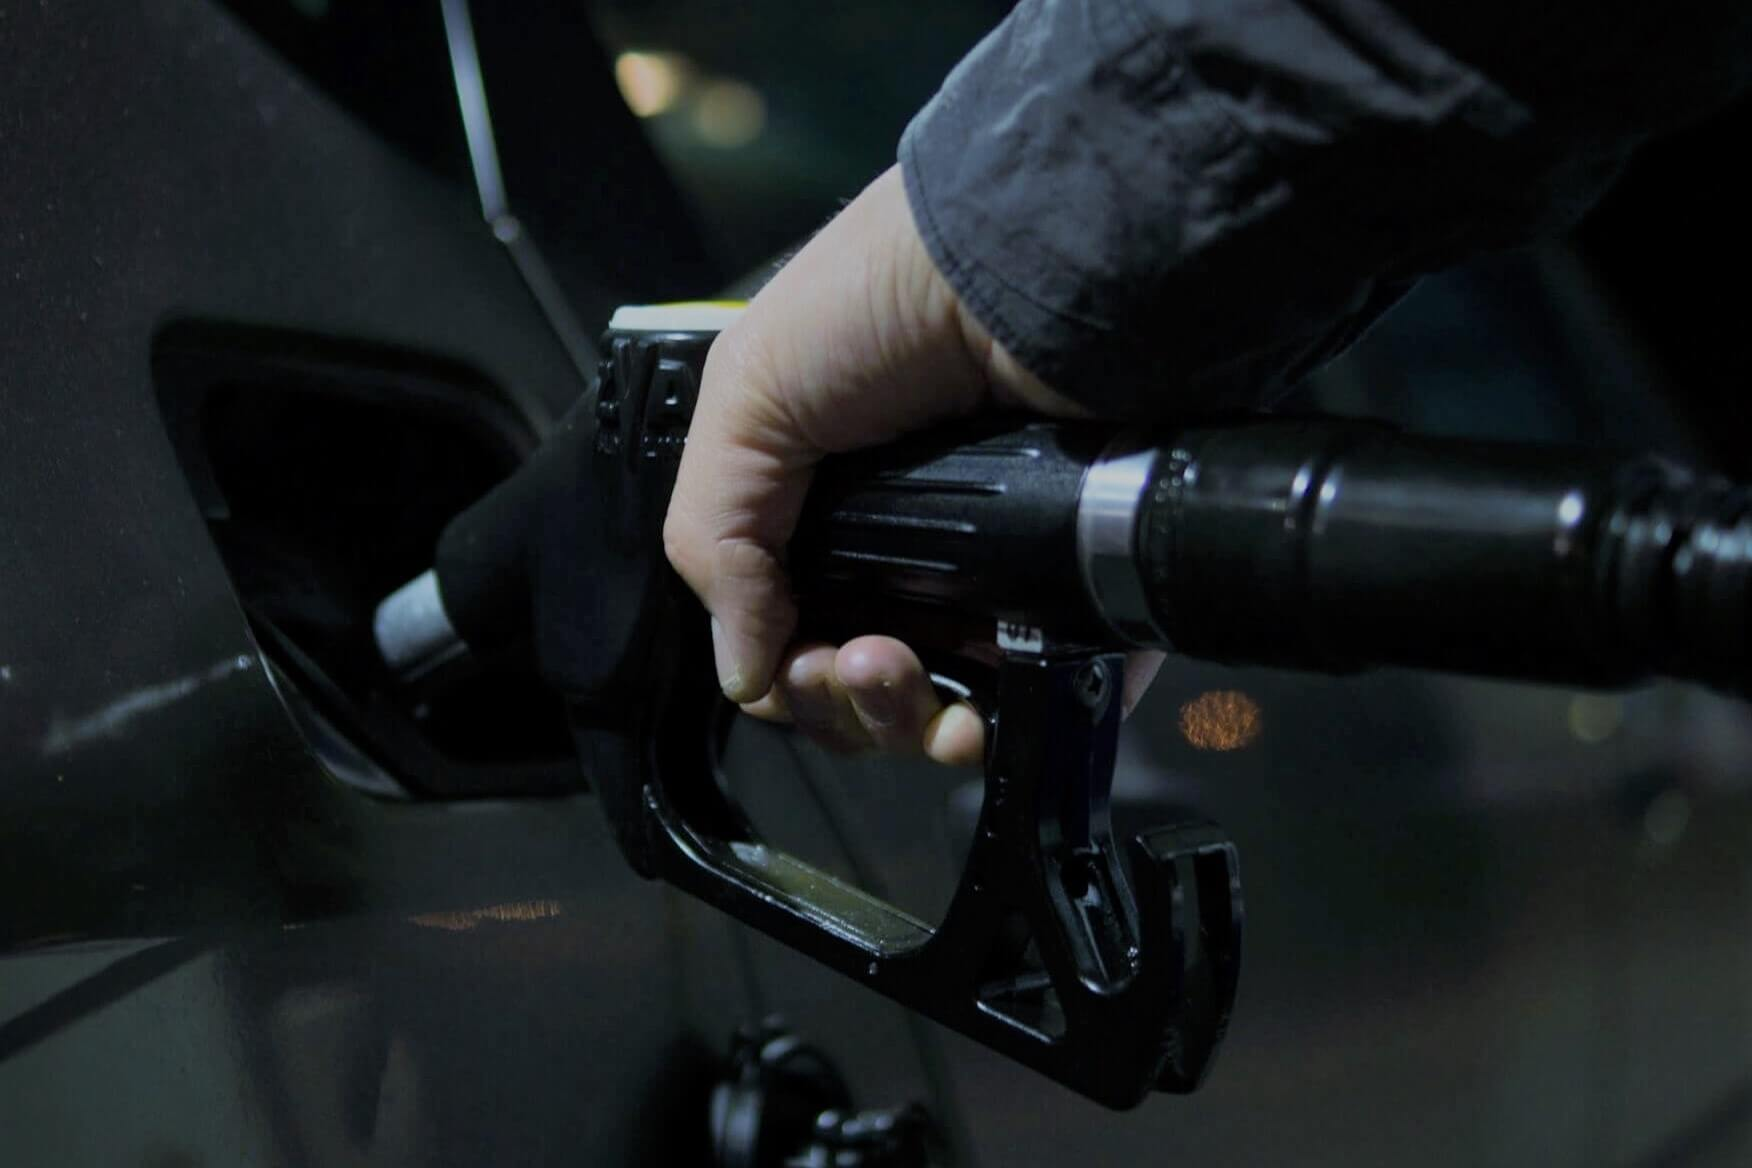 Filling up petrol efficiently can help lower driving costs